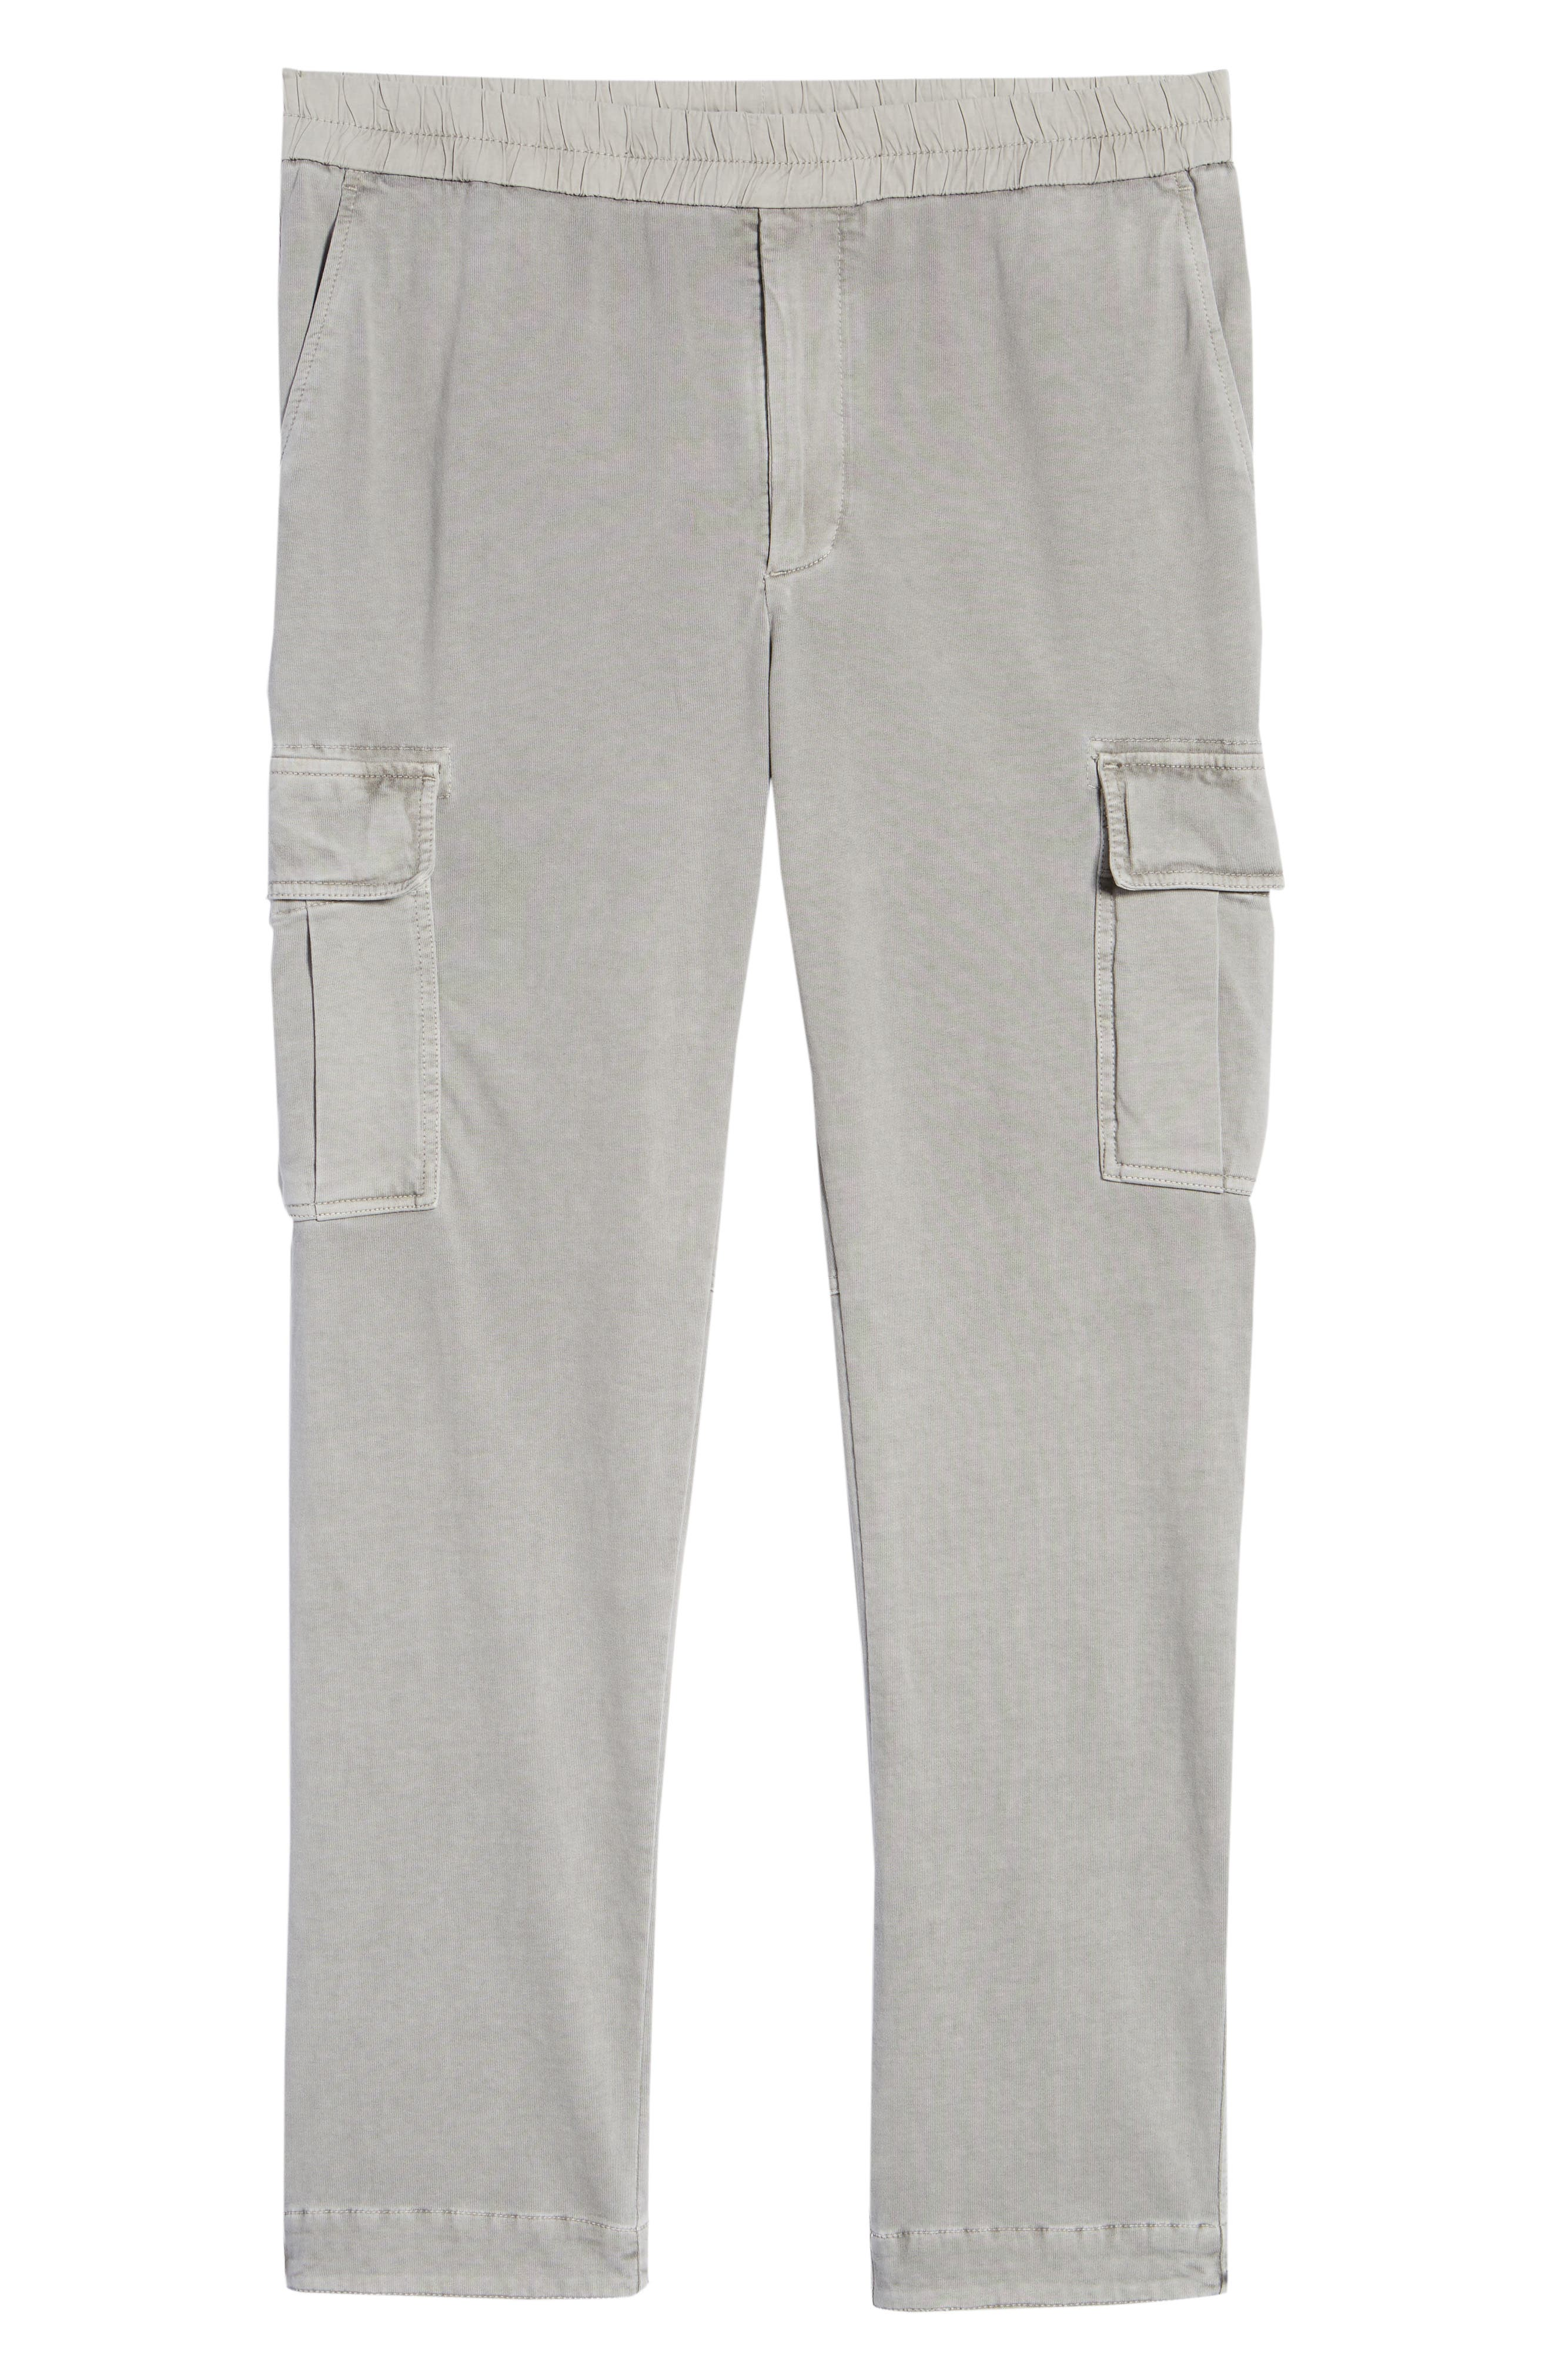 Cotton Jersey Relaxed Fit Cargo Pants,                             Alternate thumbnail 6, color,                             056